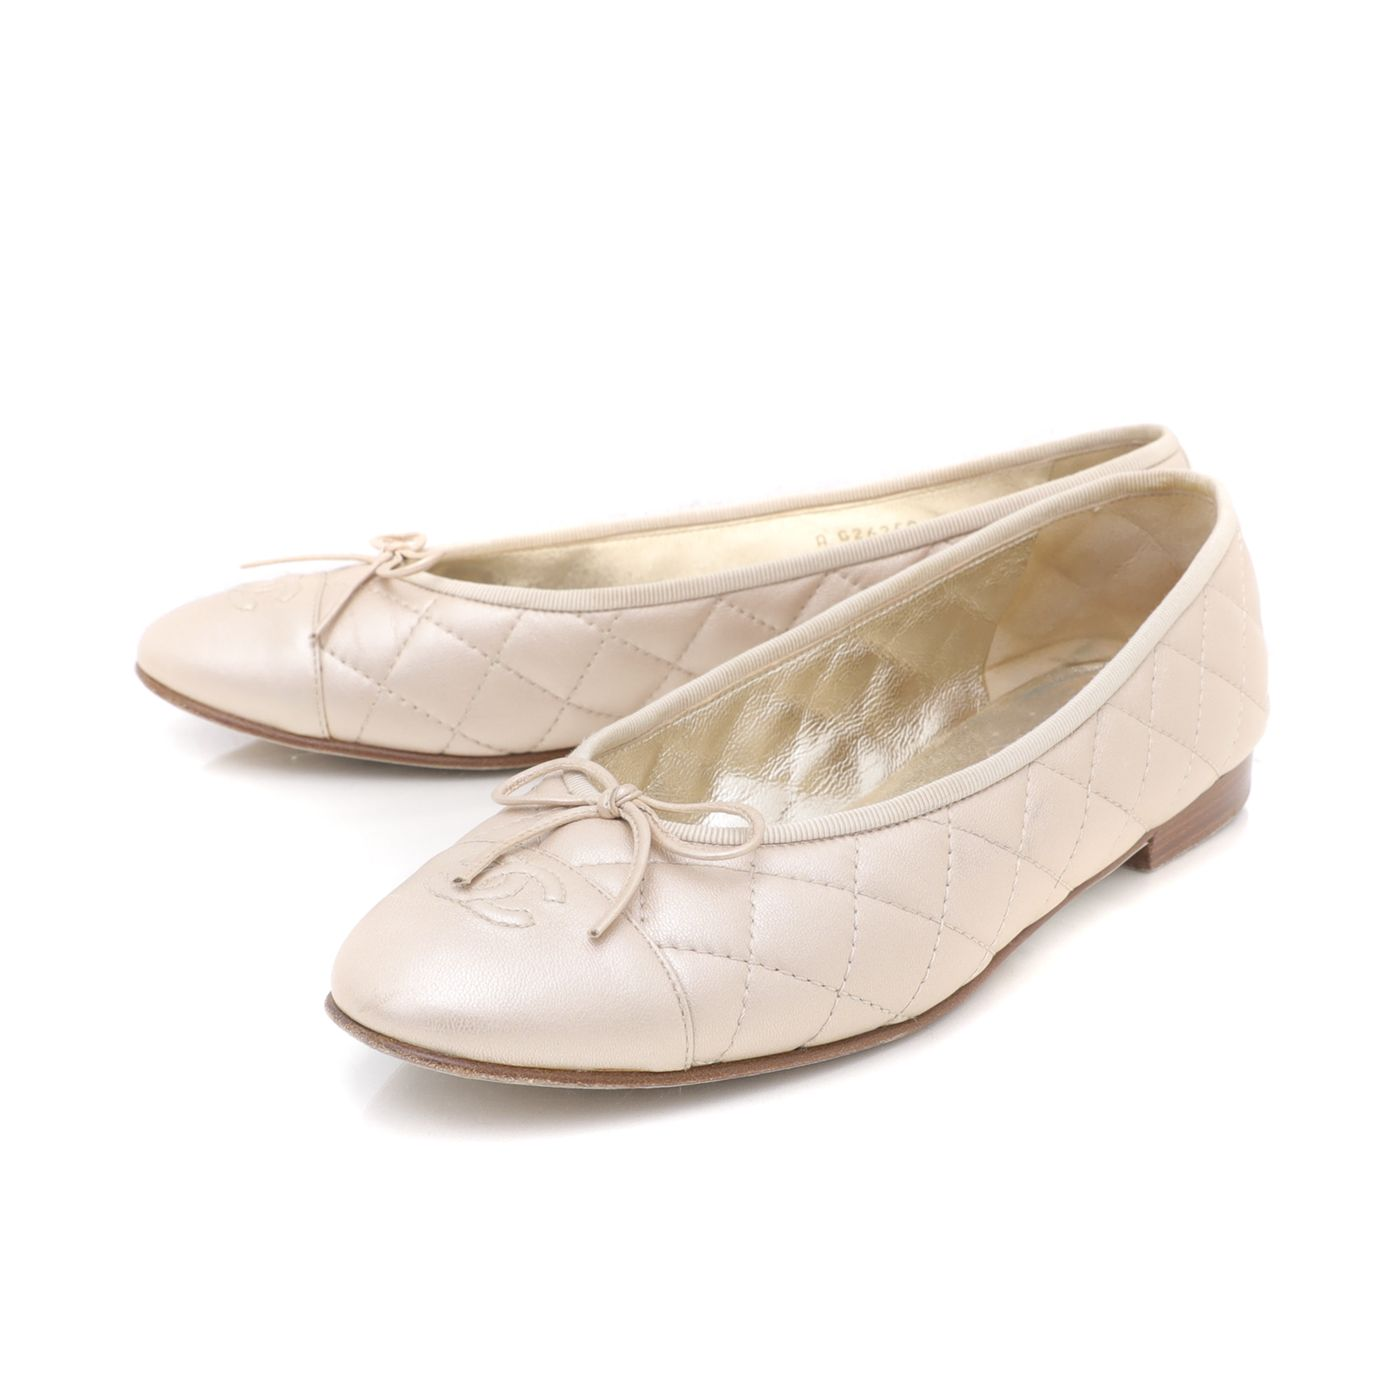 Chanel Metallic Gold CC Cap Toe Bow Flats Ballerina 41